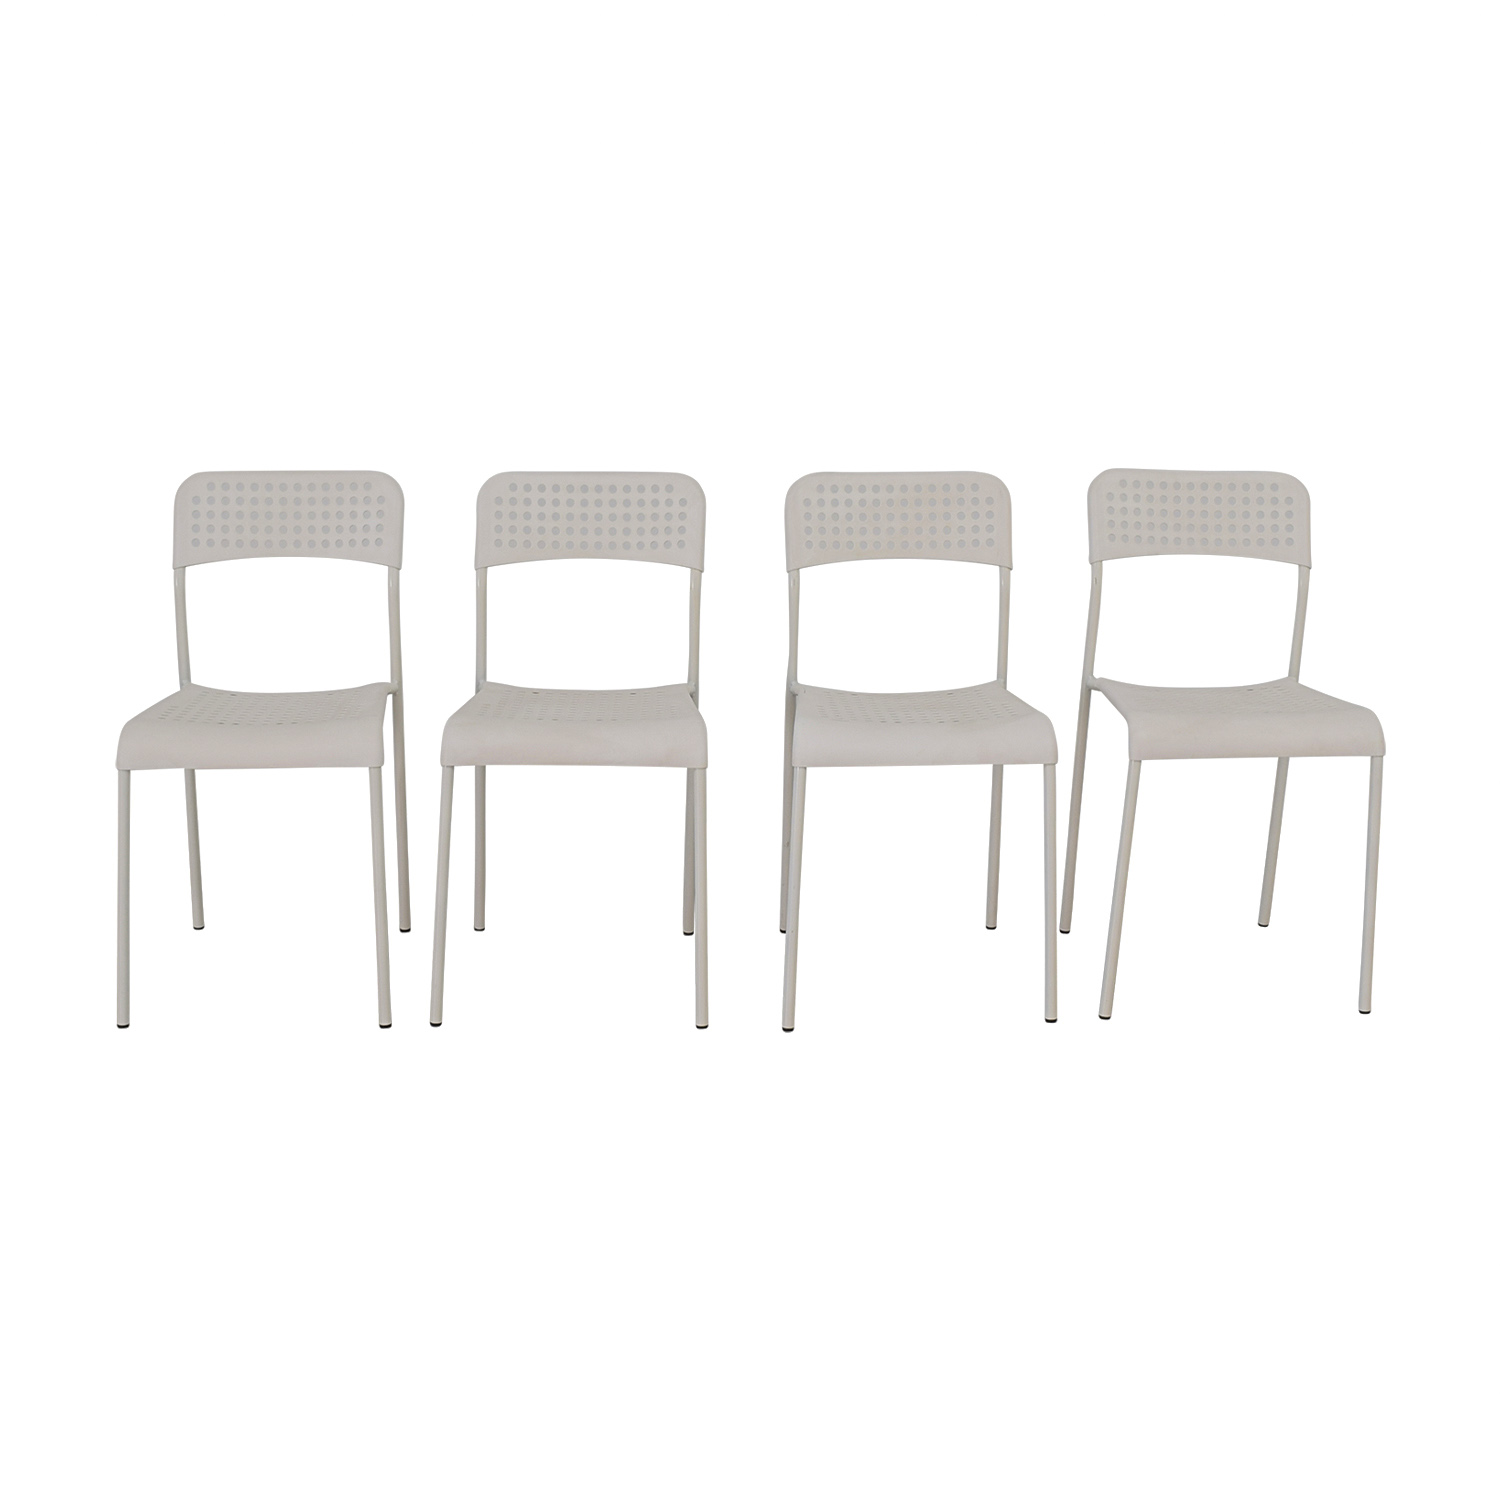 69 OFF IKEA IKEA White Chairs Chairs